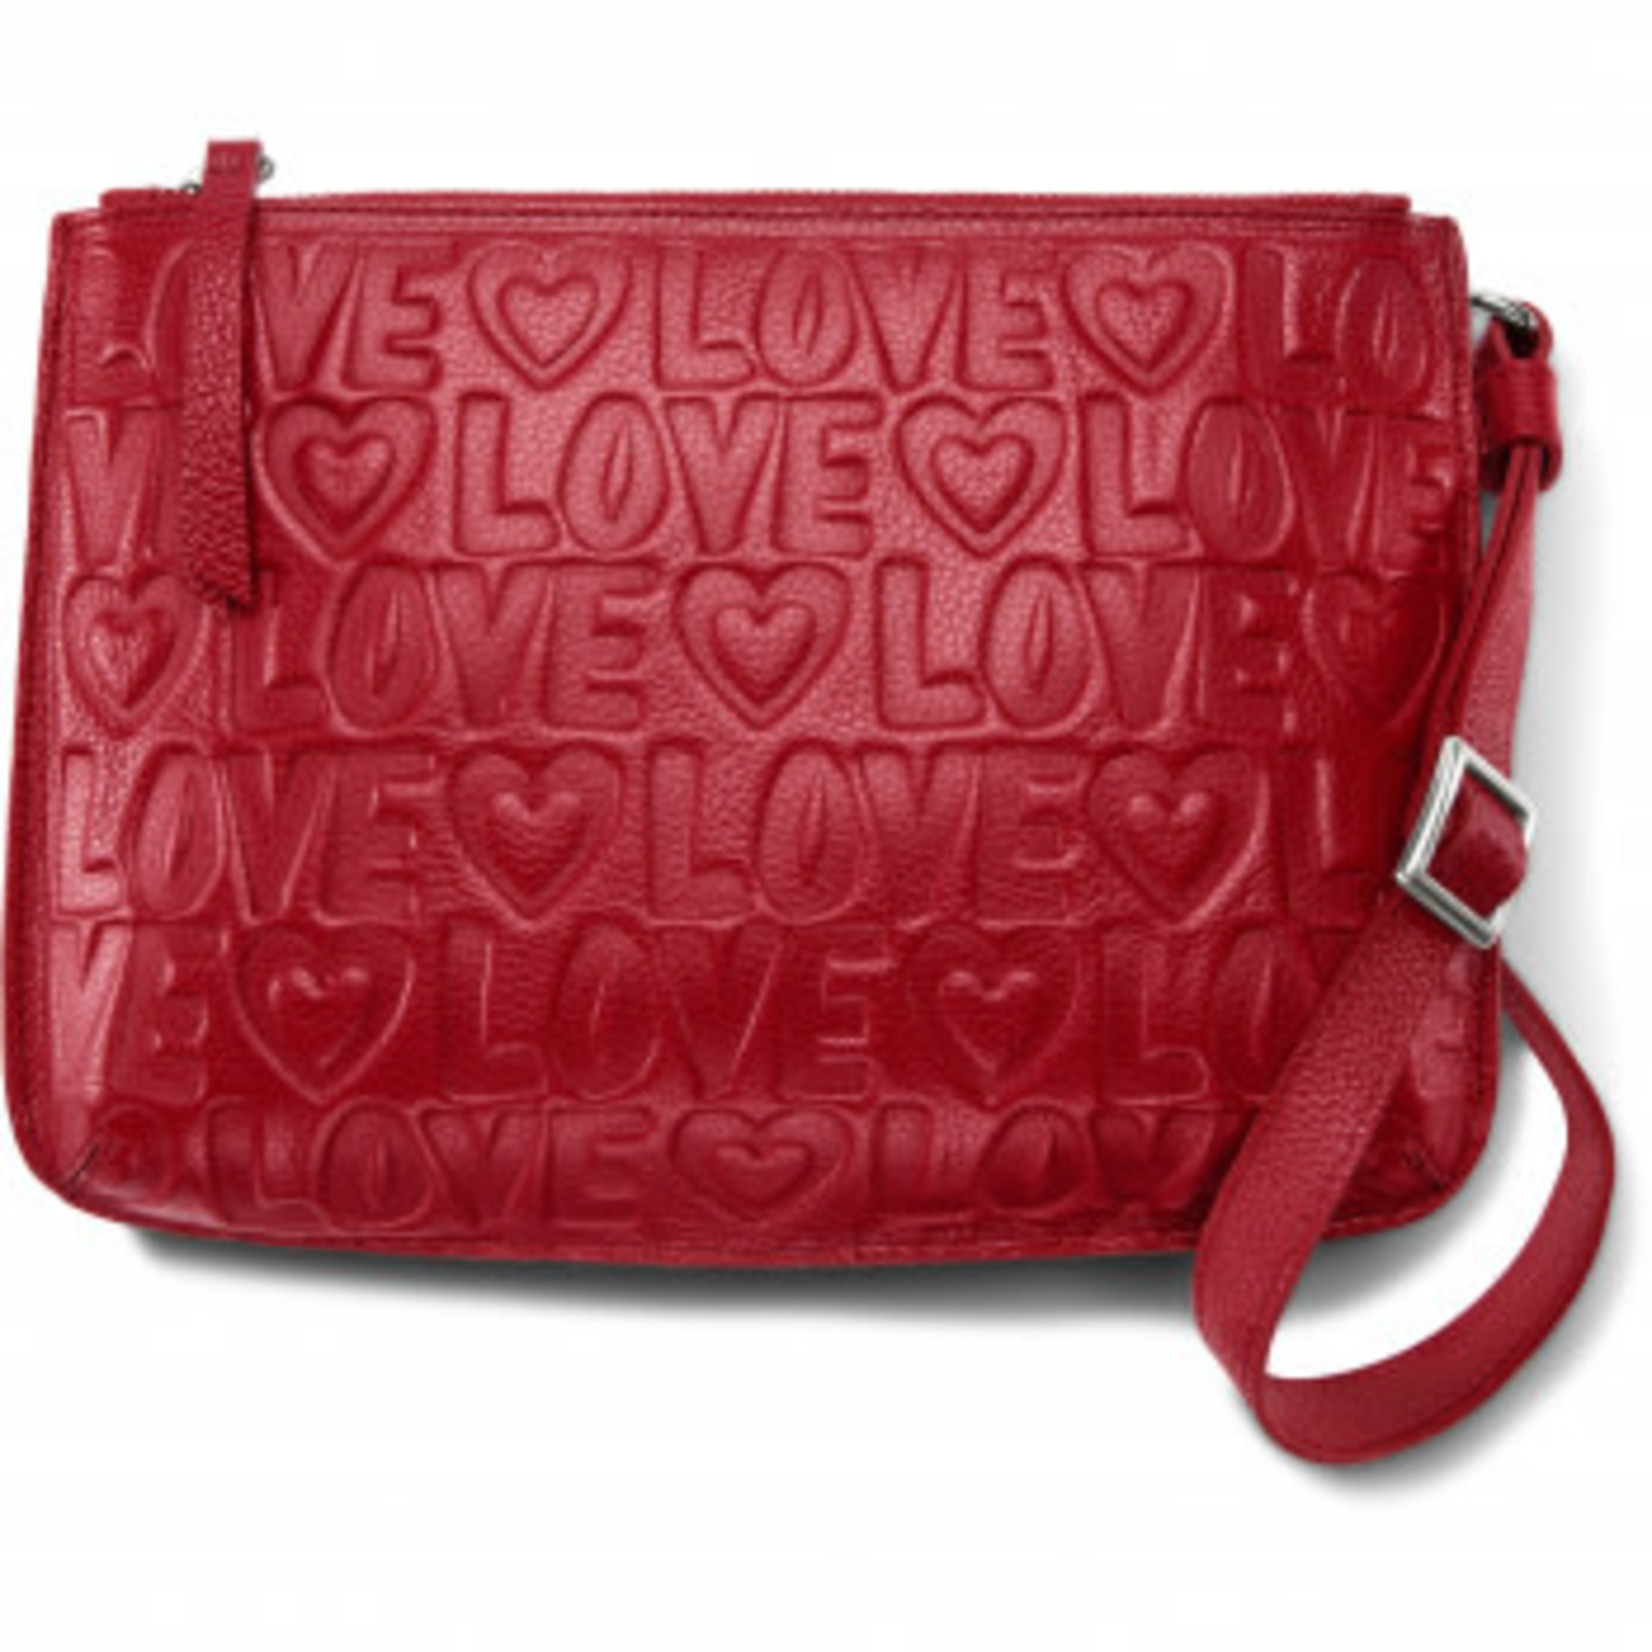 Brighton Deeply In Love Pouch in Lipstick Red